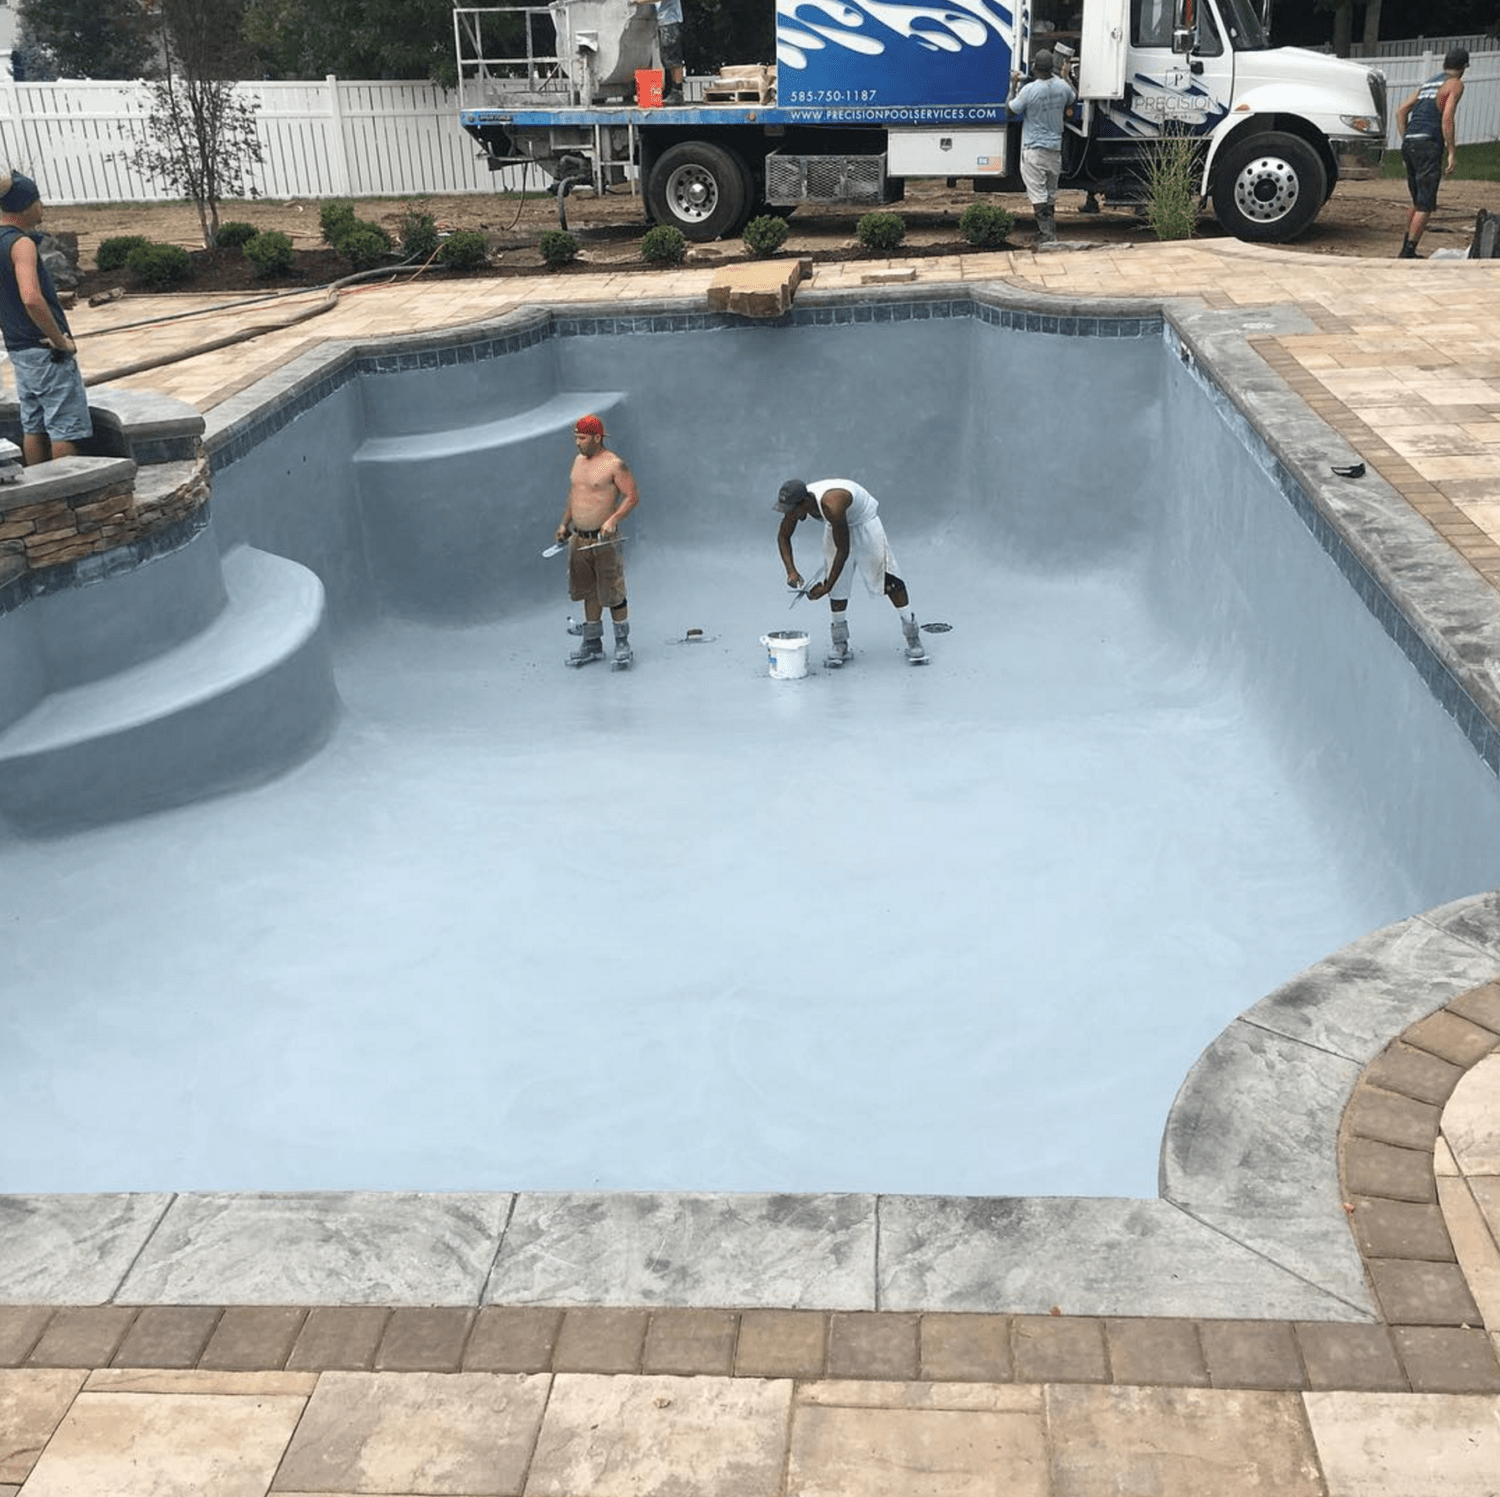 inground pool restoration, pool repair, pool service, Rochester, NY